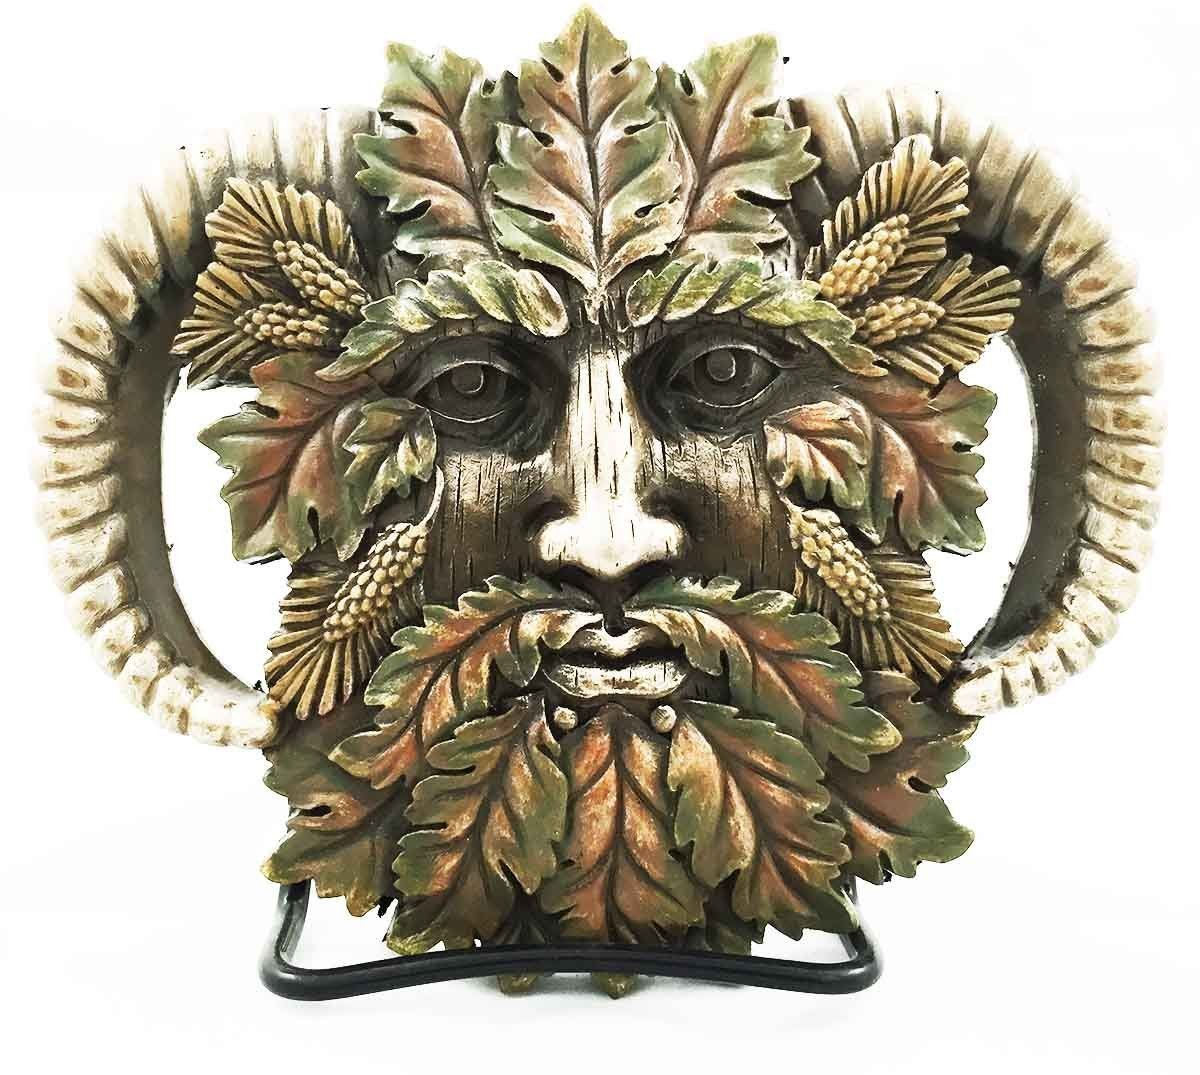 Fall autumn leaves horned god greenman pan wall decor plaque